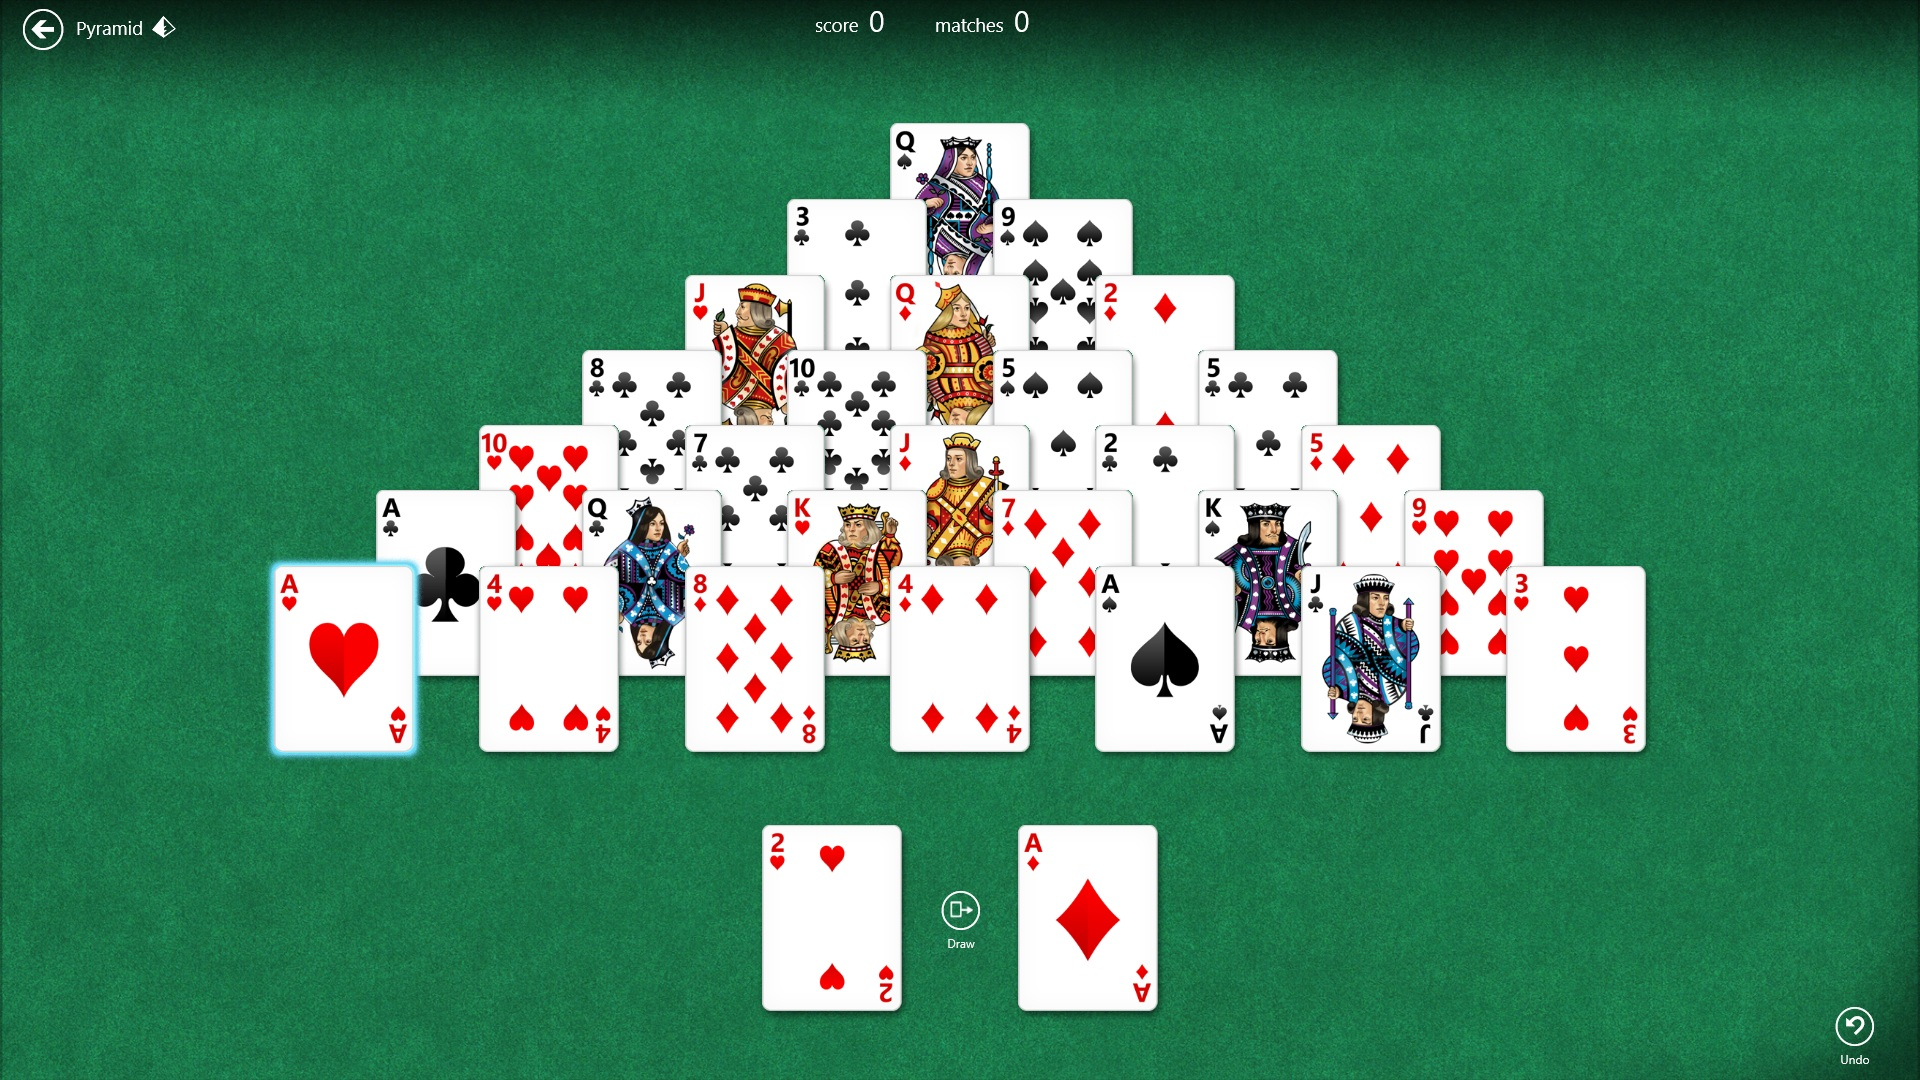 Tips For Playing Pyramid Solitaire How To Play Pyramid Solitaire